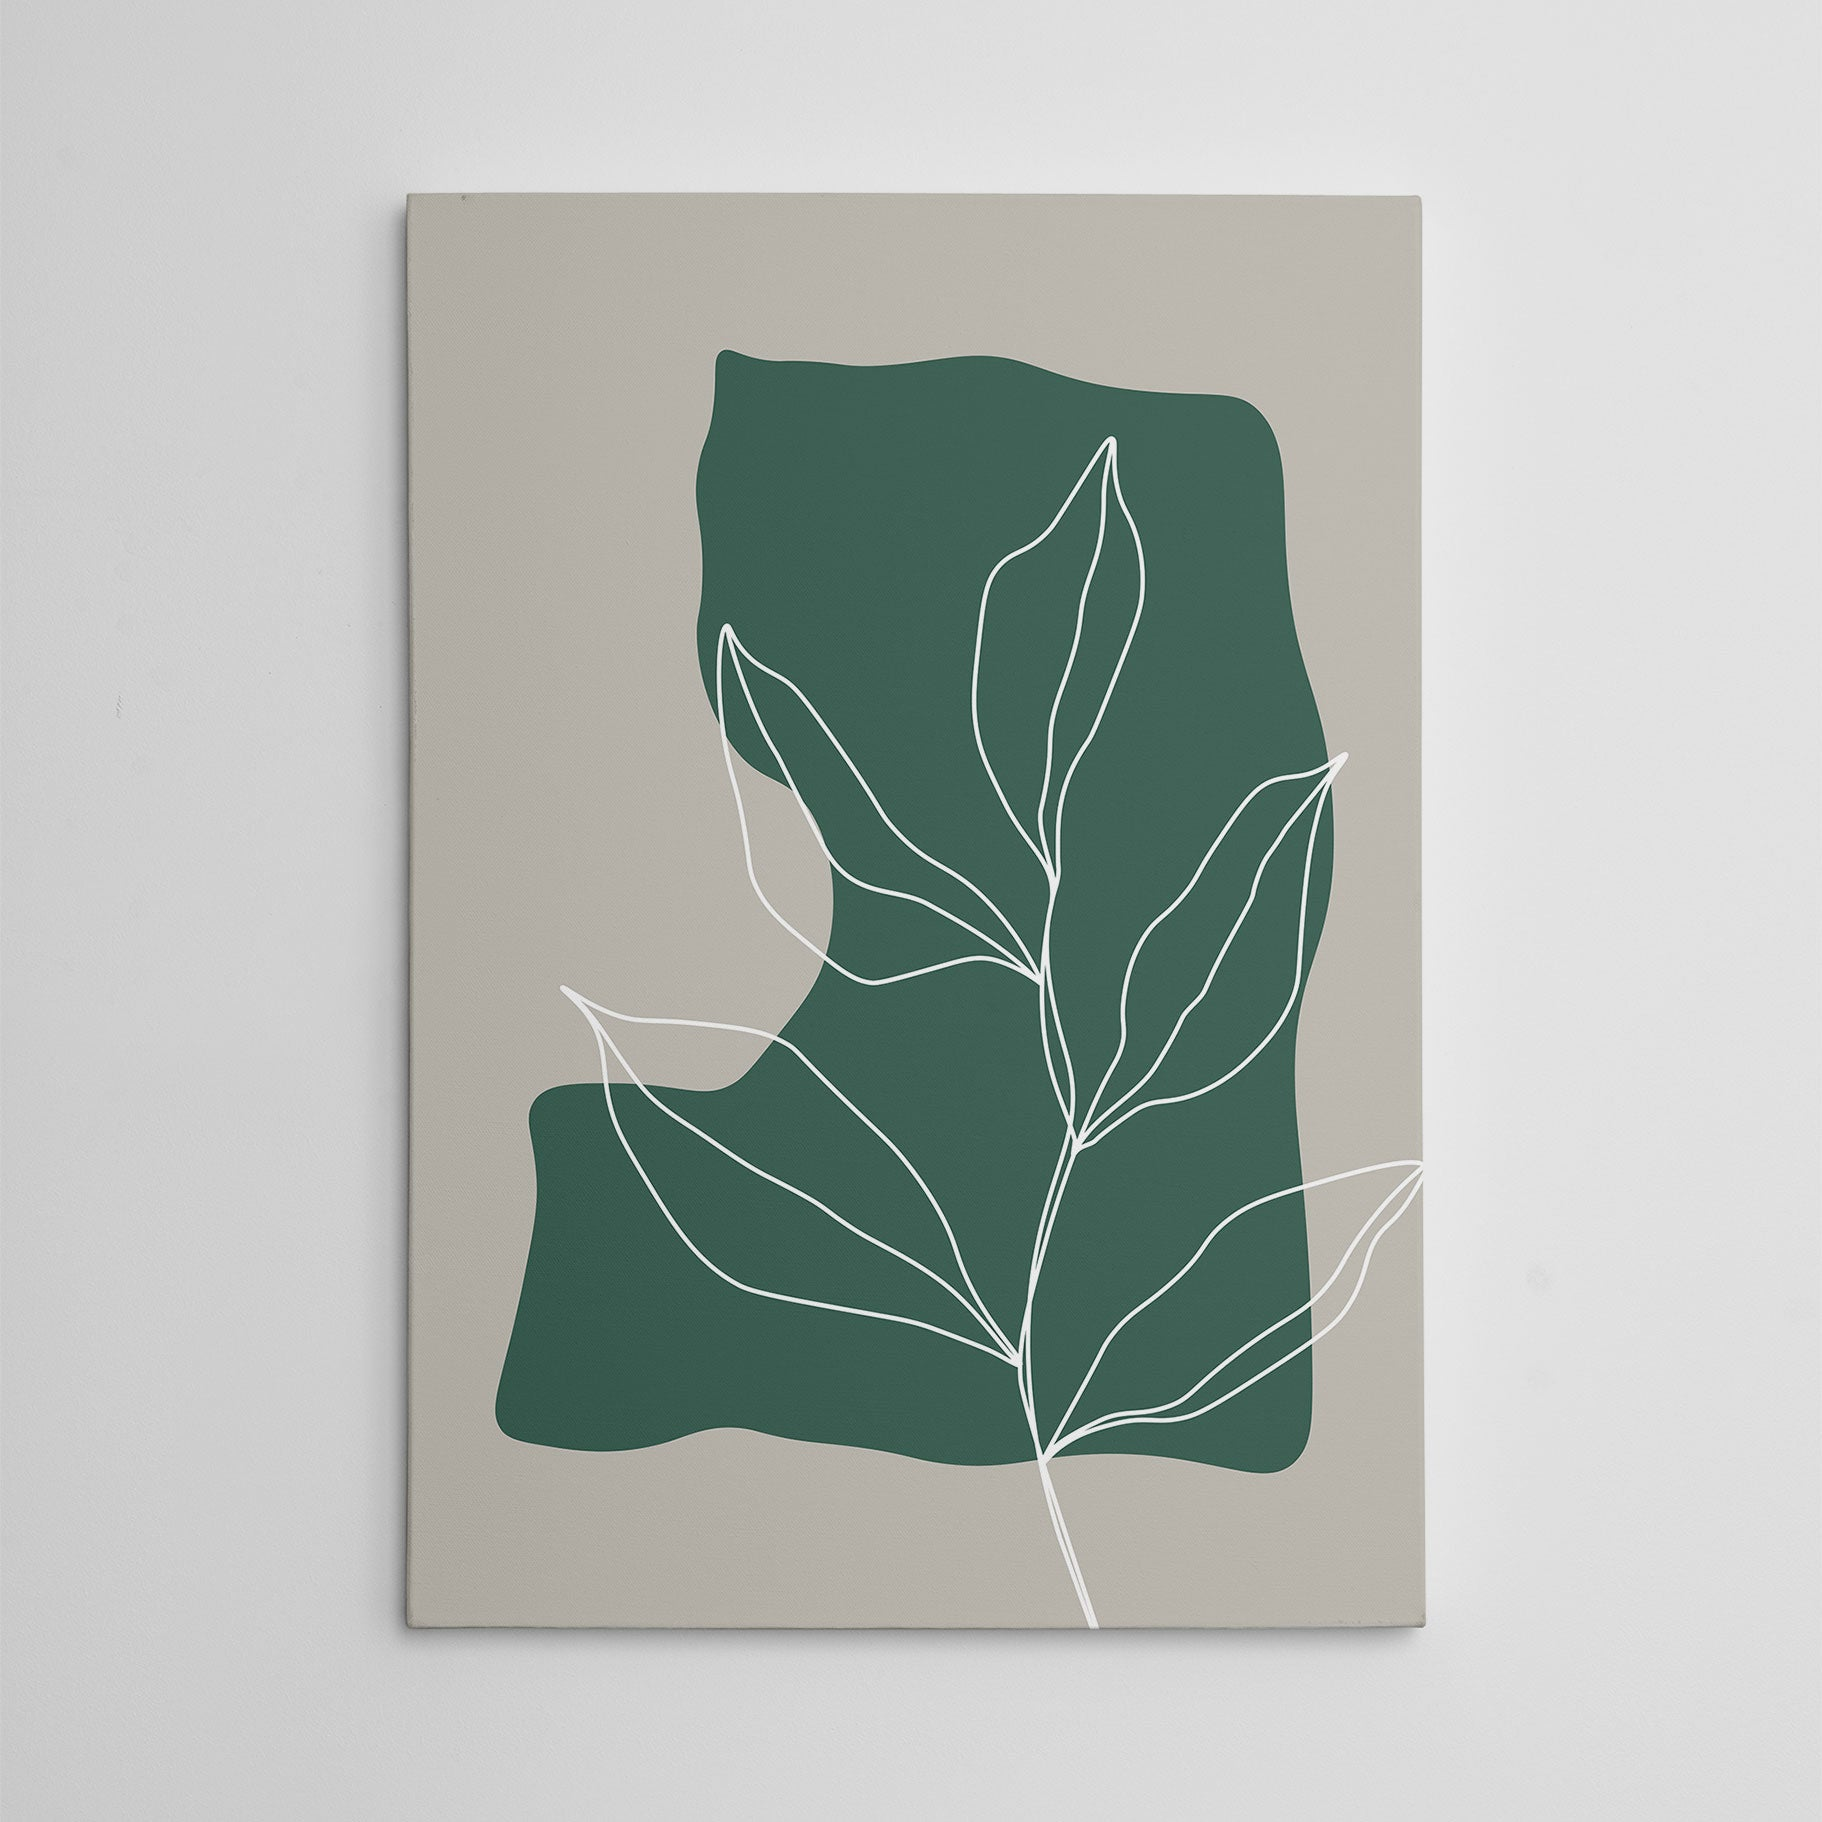 Abstract canvas print with white line leaves drawing on green and grey background.